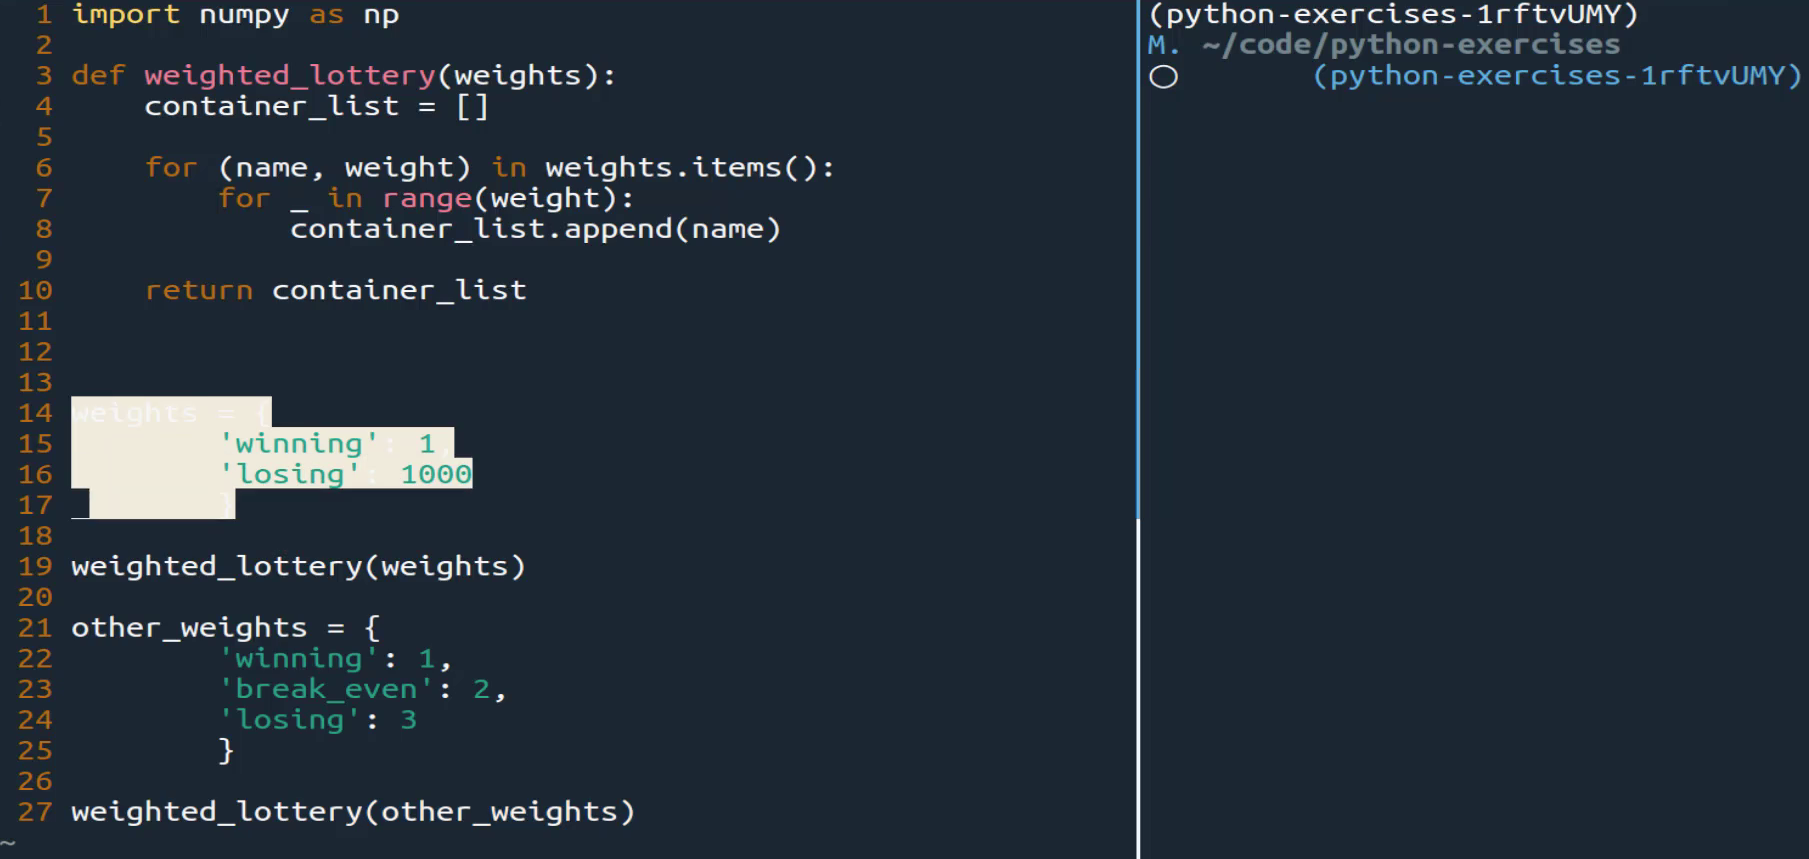 Build a Weighted Lottery Function in Python